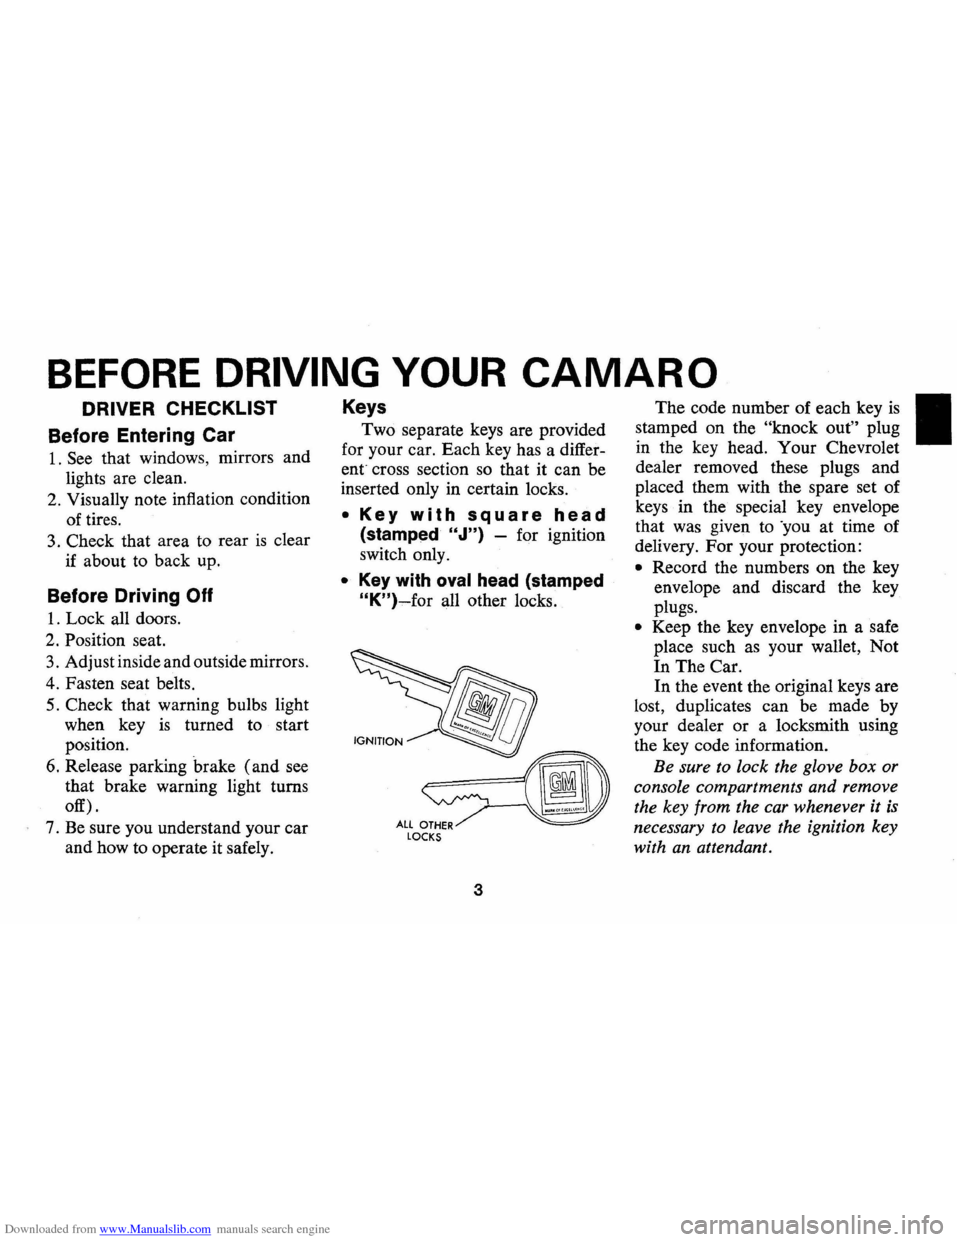 CHEVROLET CAMARO 1974 2.G Owners Manual, Page 6